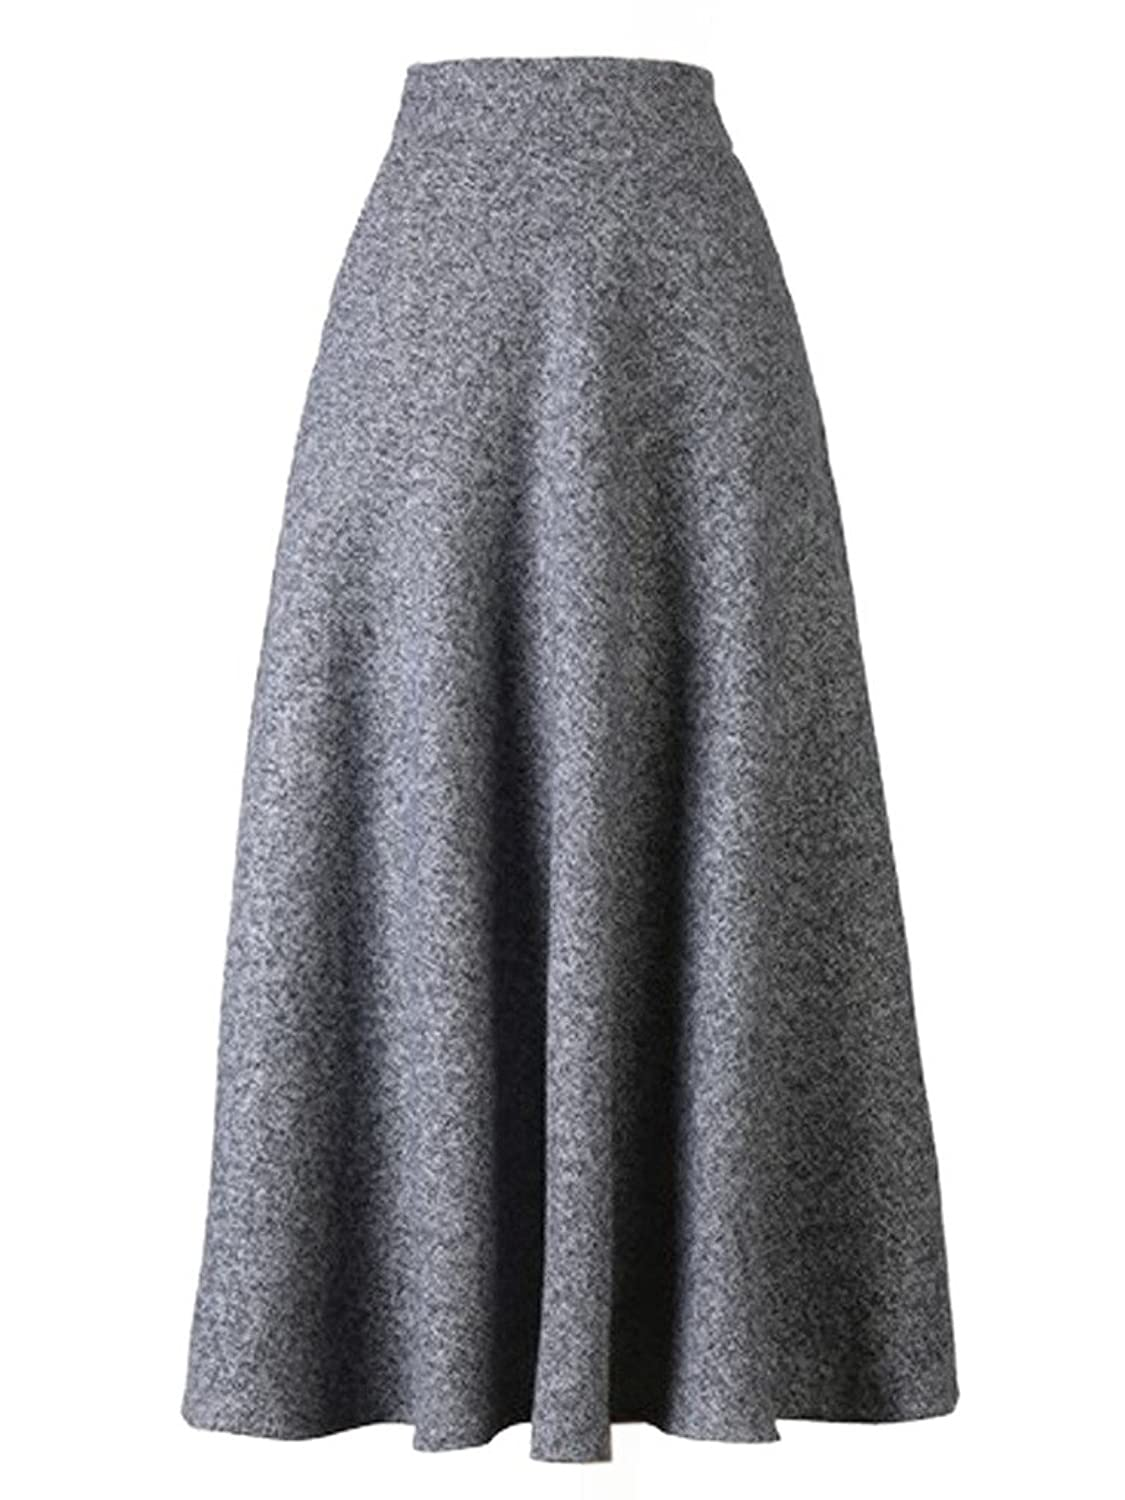 1930s Style Skirts : Midi Skirts, Tea Length, Pleated Choies Womens High Waist A-line Flared Long Skirt Winter Fall Midi Skirt $33.99 AT vintagedancer.com